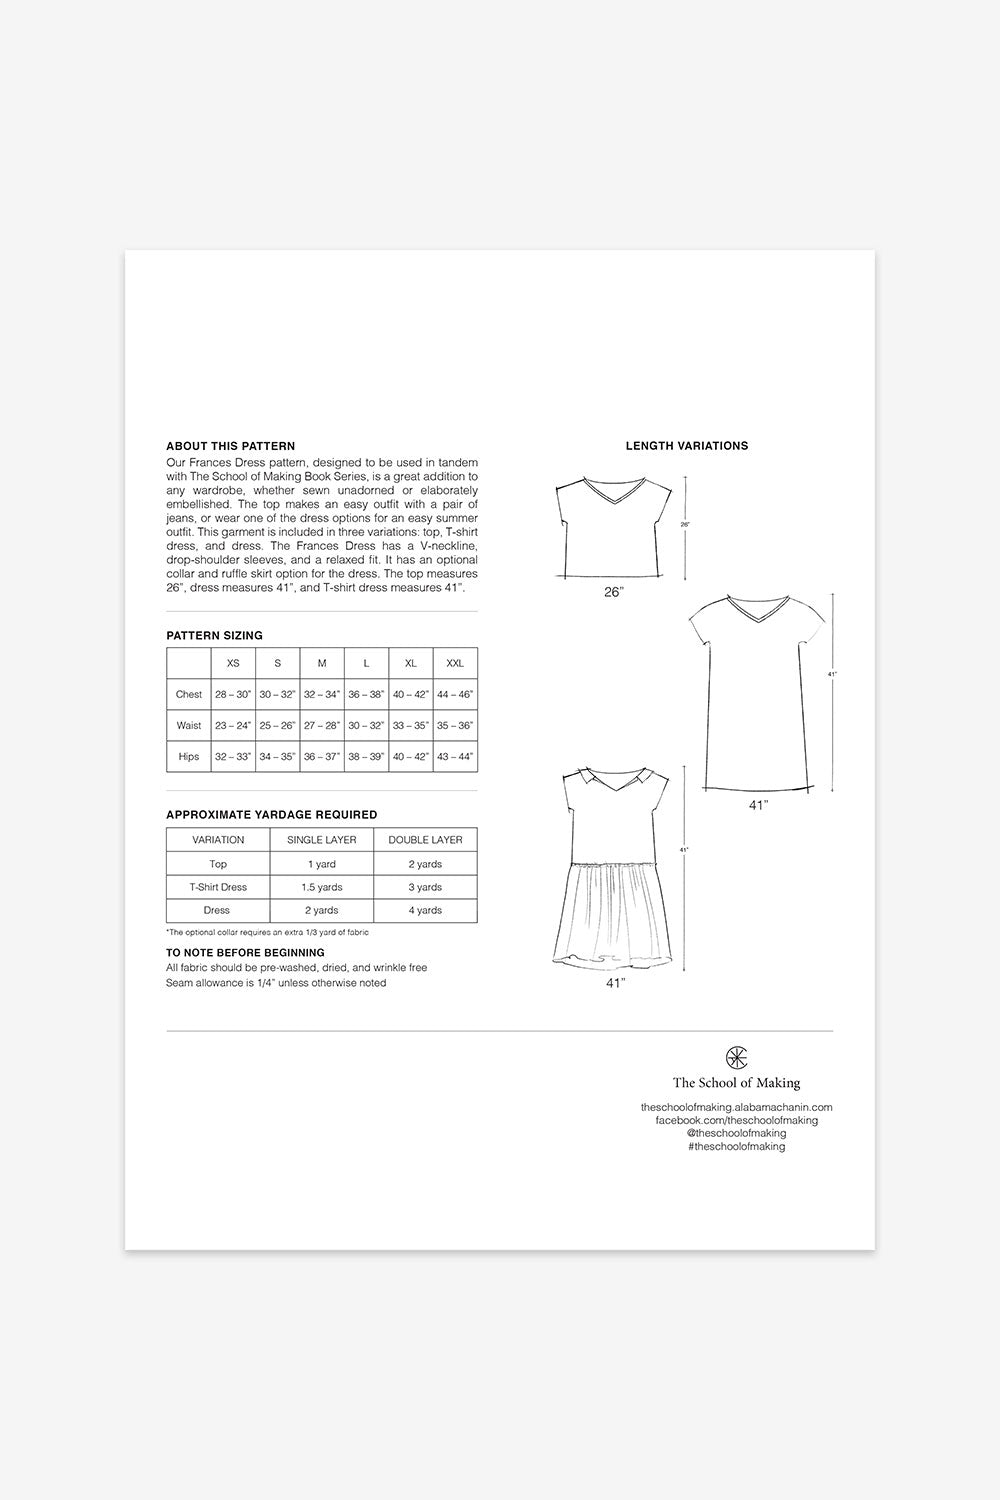 The School of Making Frances Dress Pattern Maker Supplies for Hand-Sewn Clothing